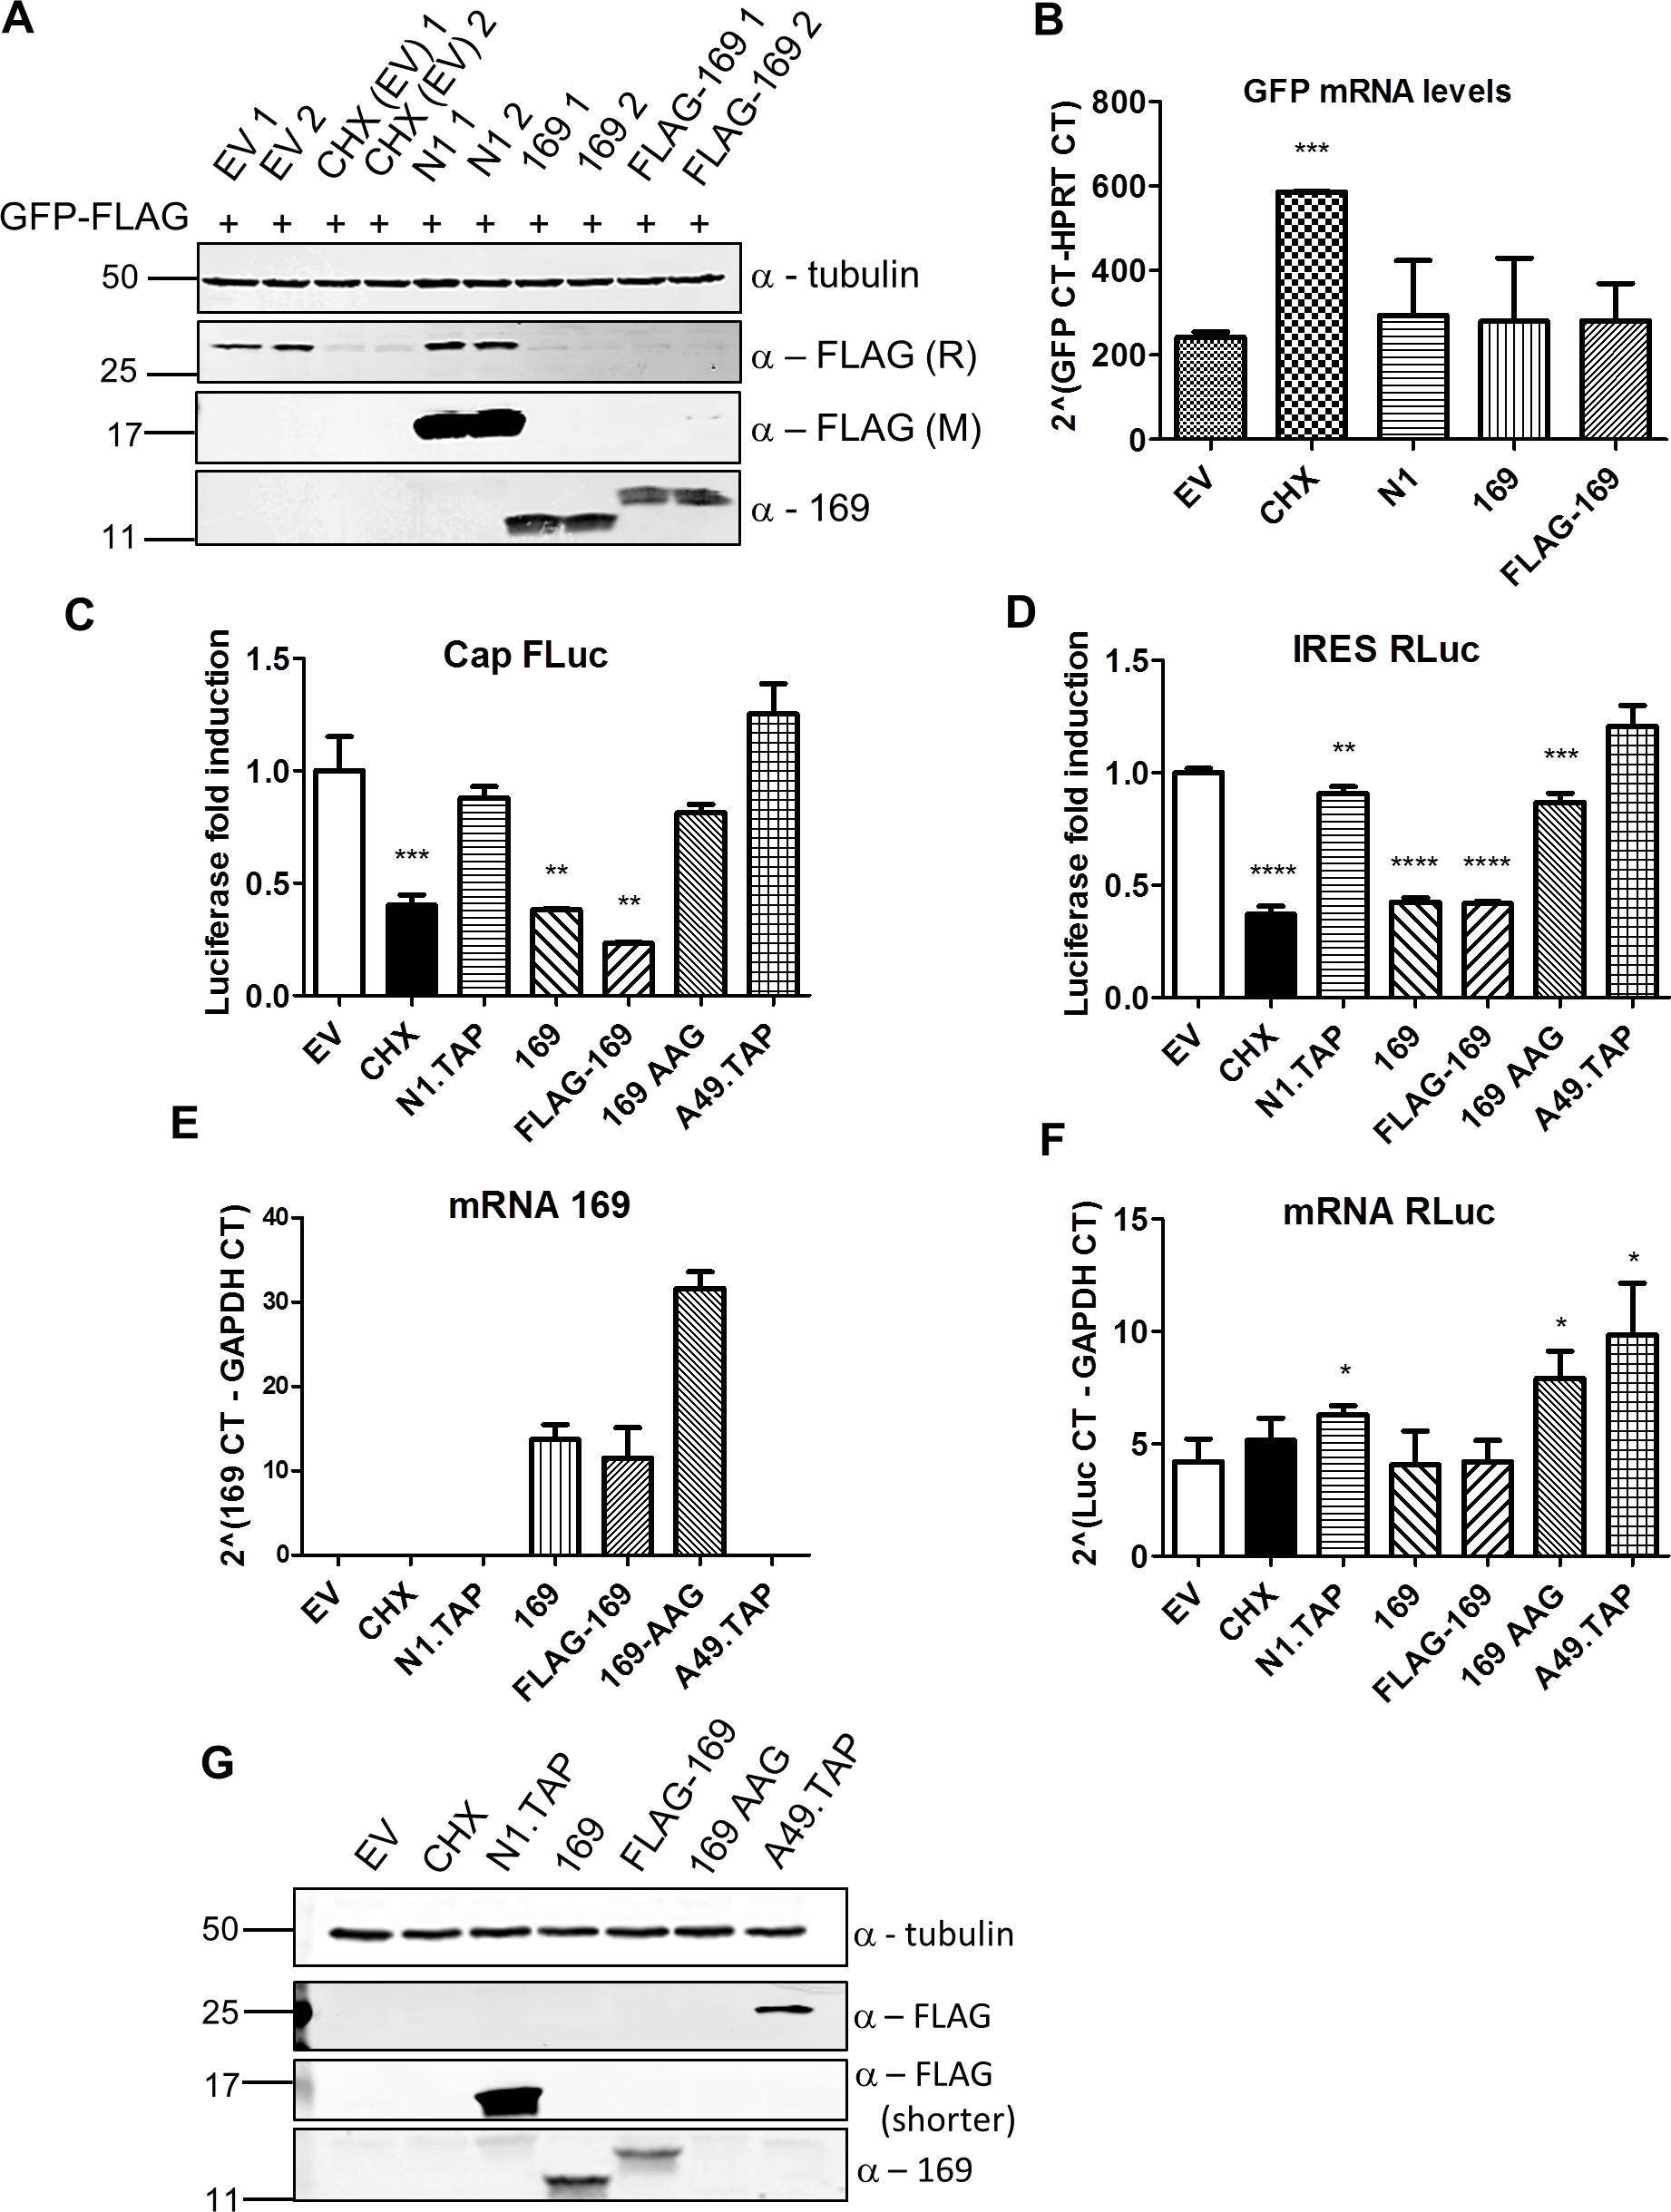 Protein 169 inhibits cap-dependent and FMDV IRES-dependent translation.